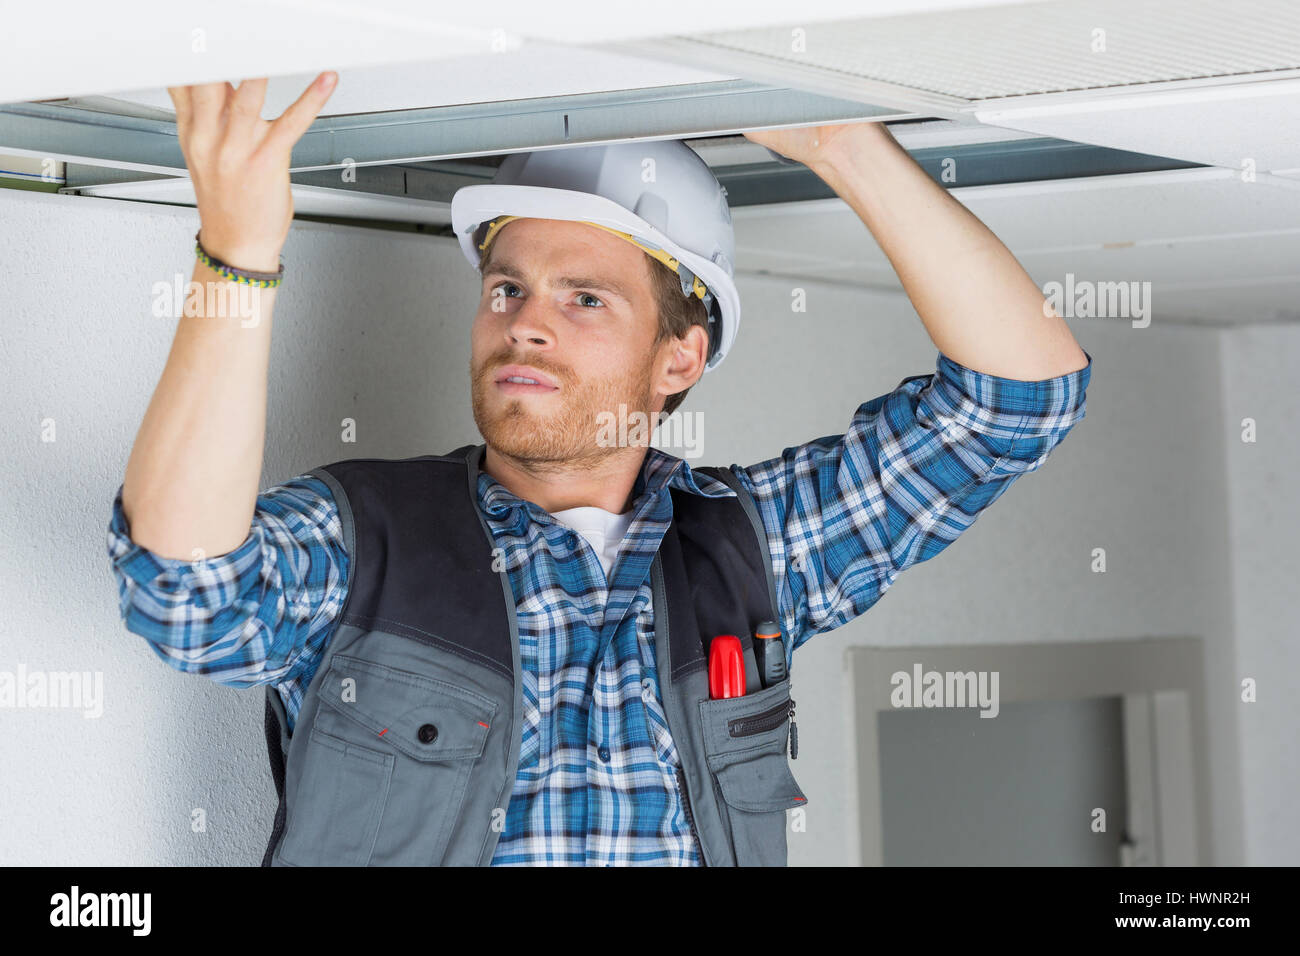 electrical worker wiring in ceiling Stock Photo: 136318073 - Alamy